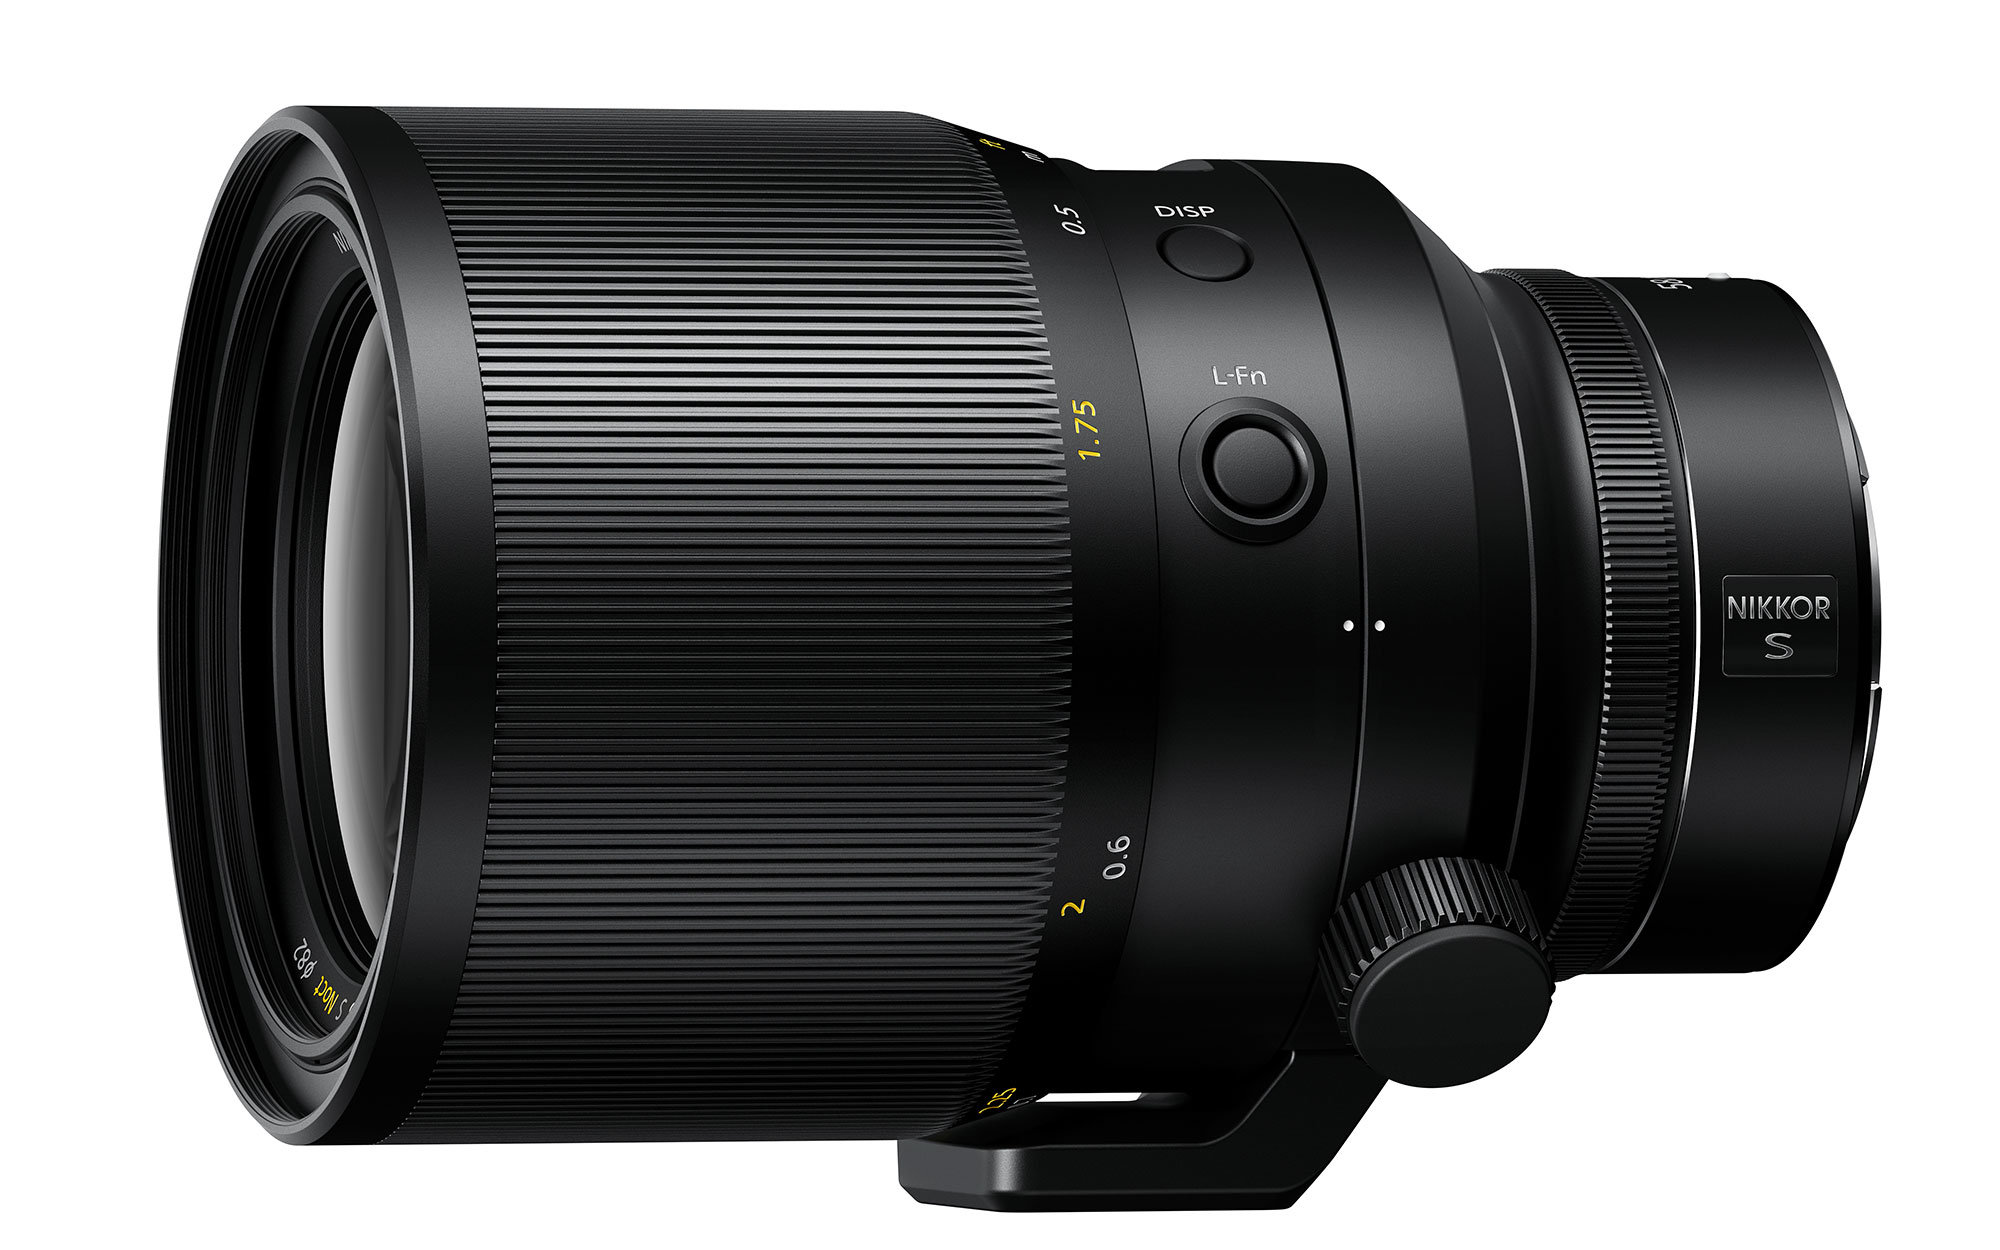 Nikon introduces NIKKOR Z 58mm 1:0,95 S Noct for 8.999,- Euro and new lens roadmap